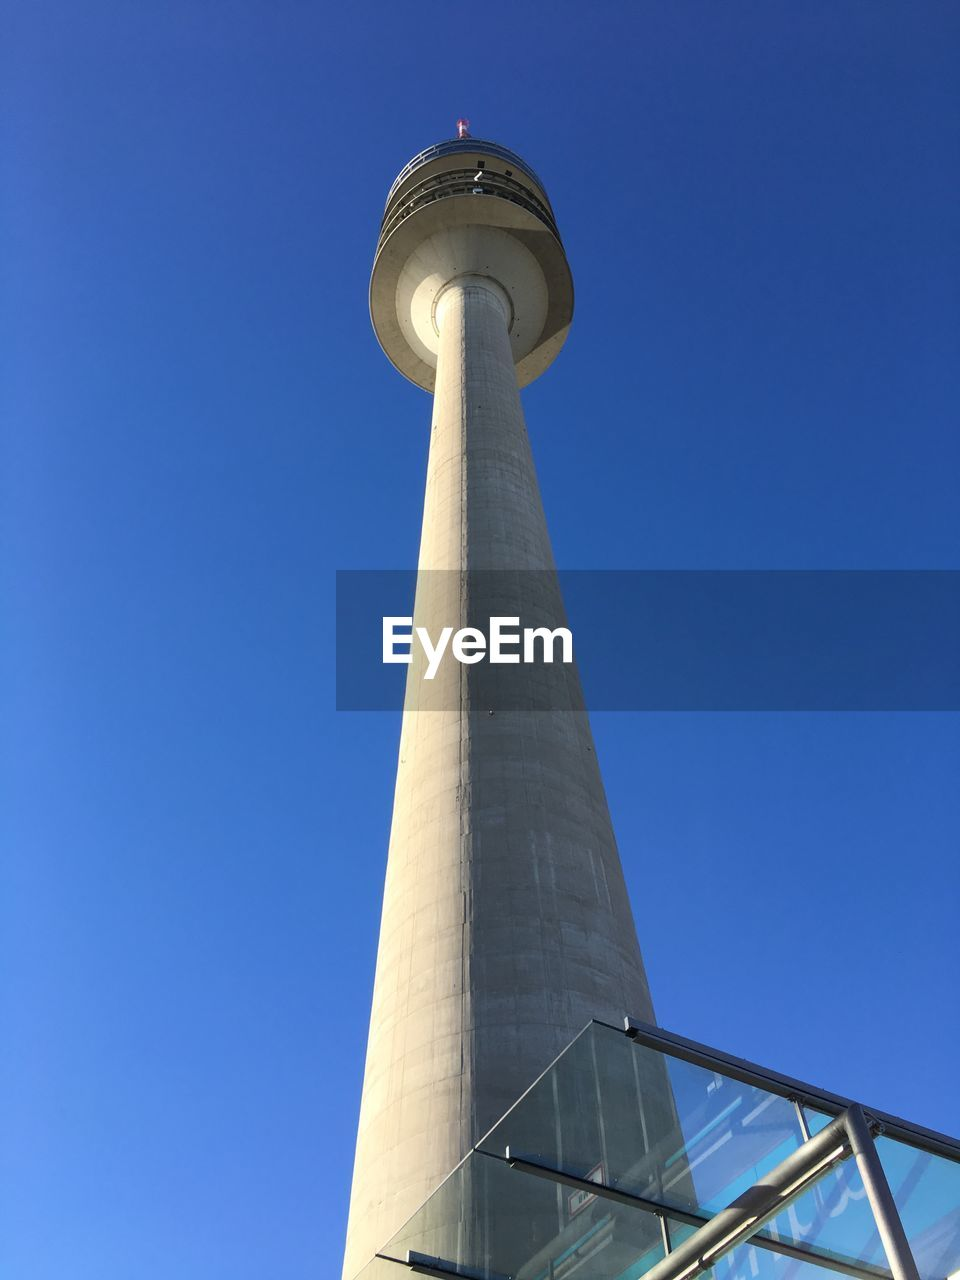 architecture, low angle view, built structure, sky, building exterior, blue, tall - high, clear sky, tower, nature, day, no people, travel destinations, city, travel, outdoors, tourism, copy space, building, sunlight, global communications